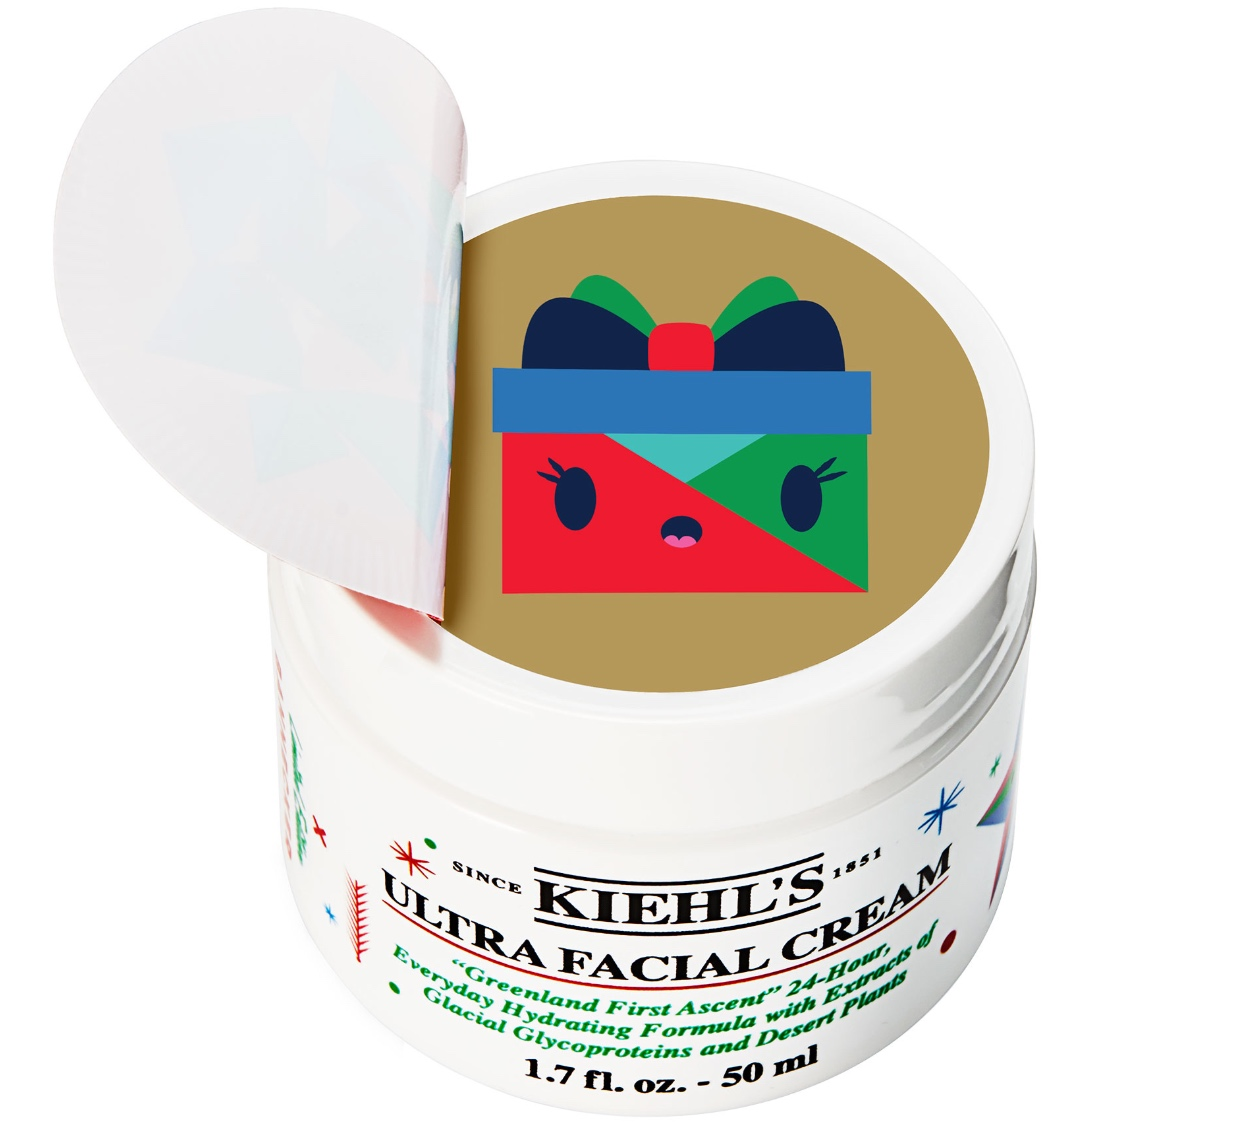 Kiehl's 2018 Holiday Packaging Collaboration with artist Andrew Bannecker